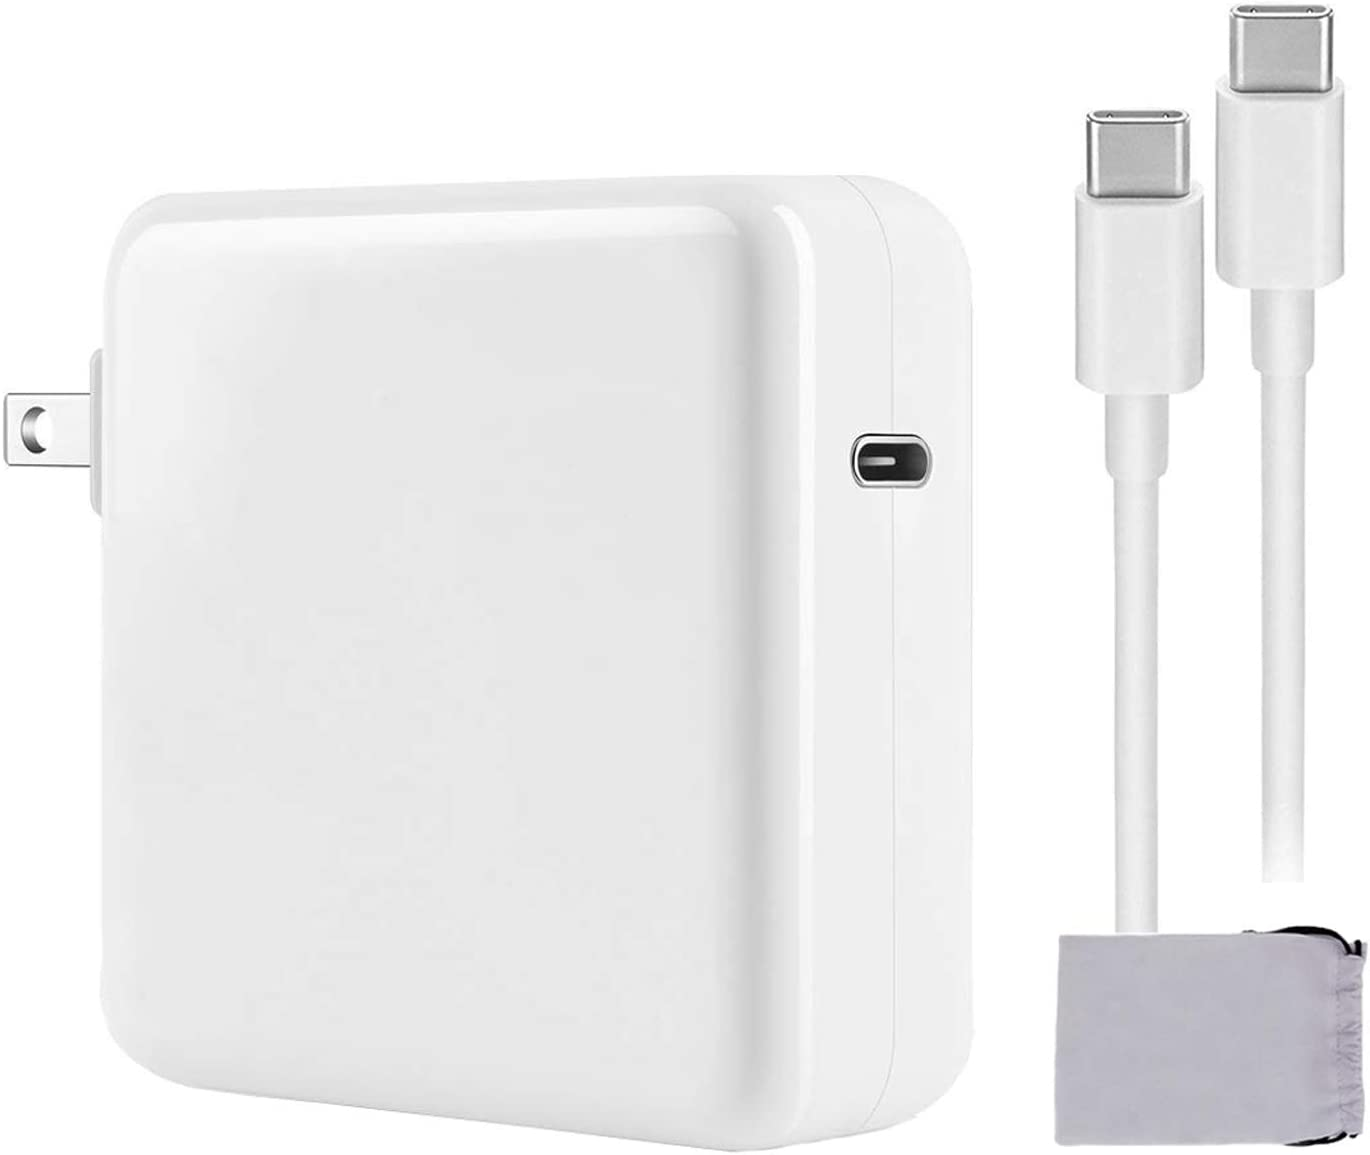 Mac Book Pro Charger, 87W USB C Power Adapter Compatible with MacBook Pro 15 Inch 13 Inch 2020/2019/2018 Include Charge Cable(6.6ft)